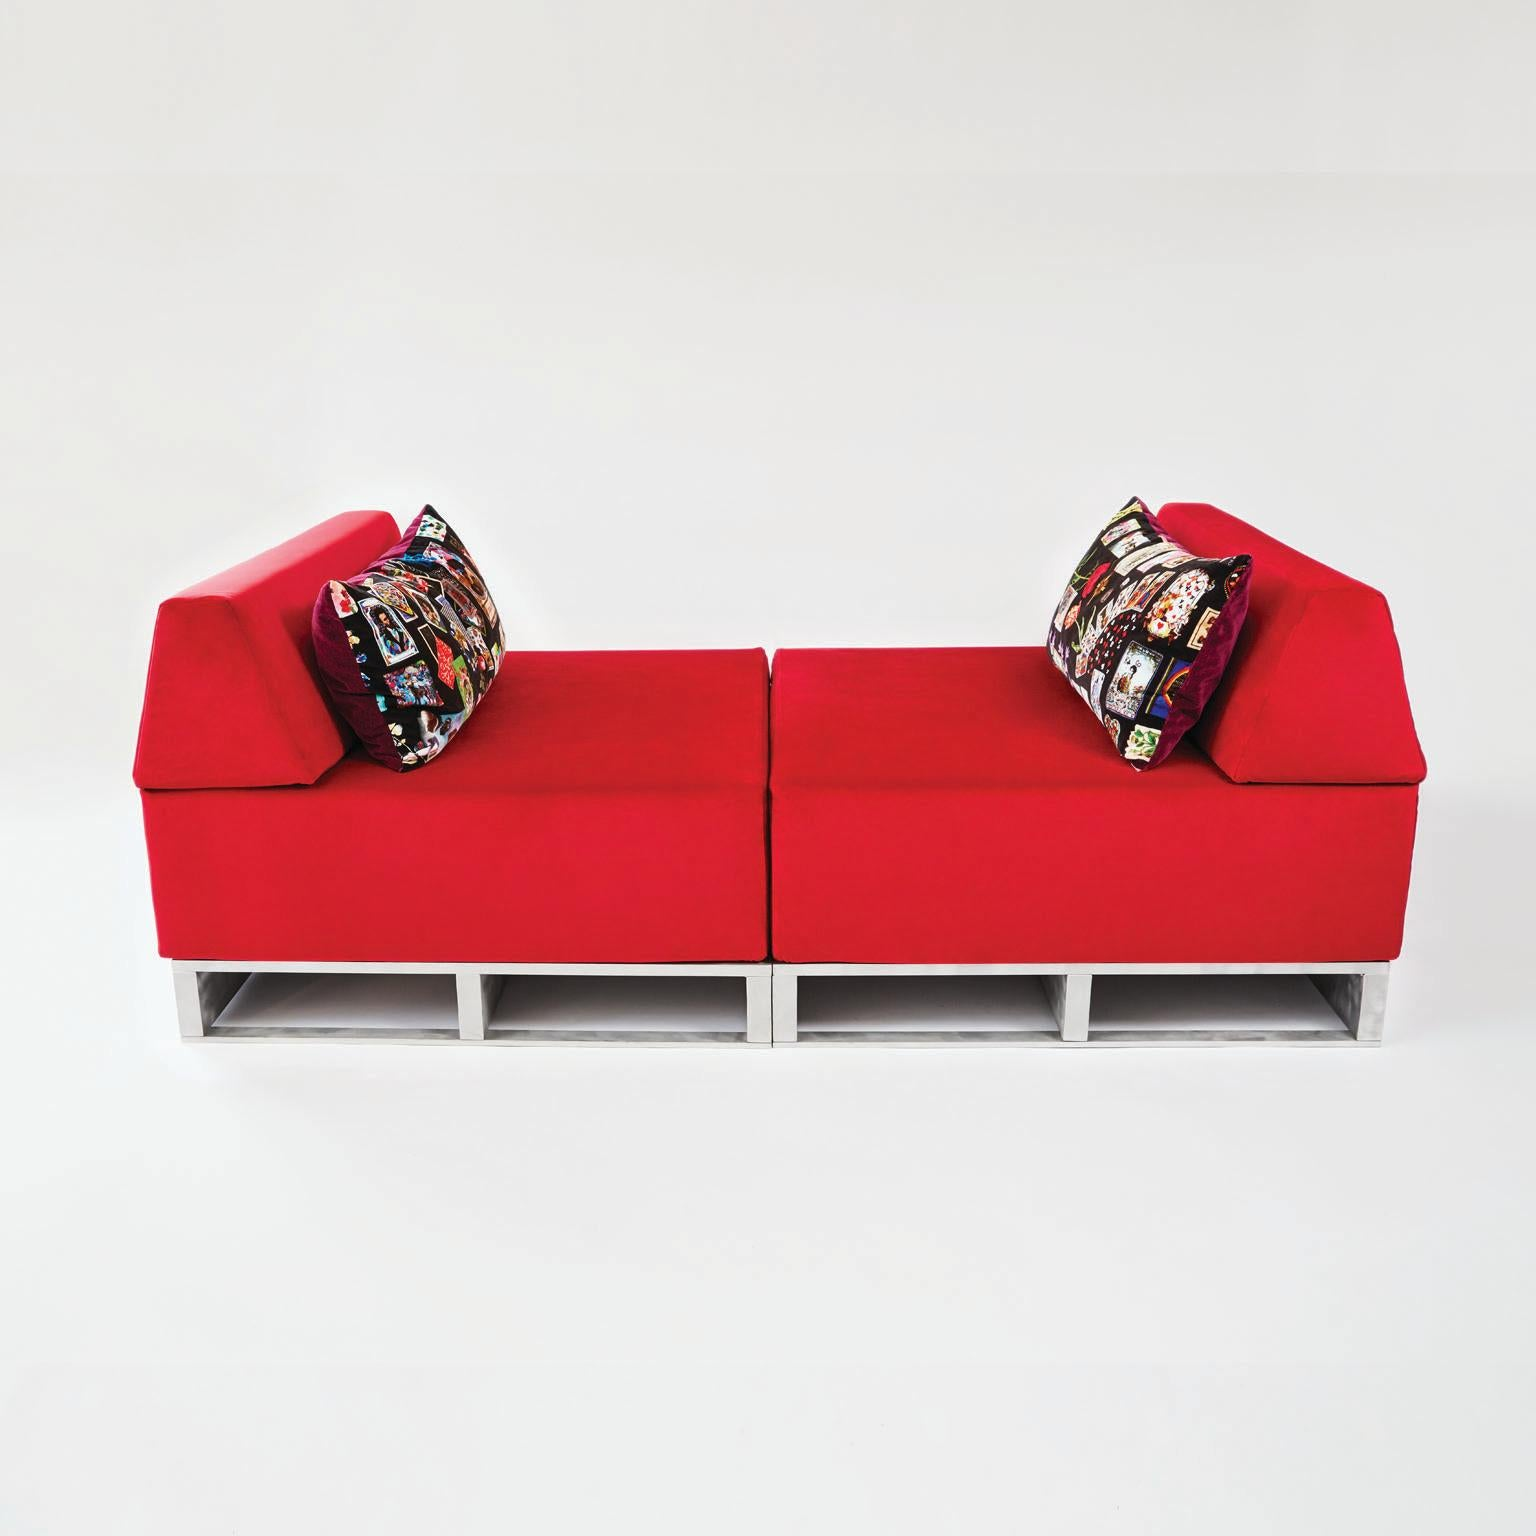 Horst Brüning Contemporary Modular Sofa Indoor/outdoor In Red Fabric On